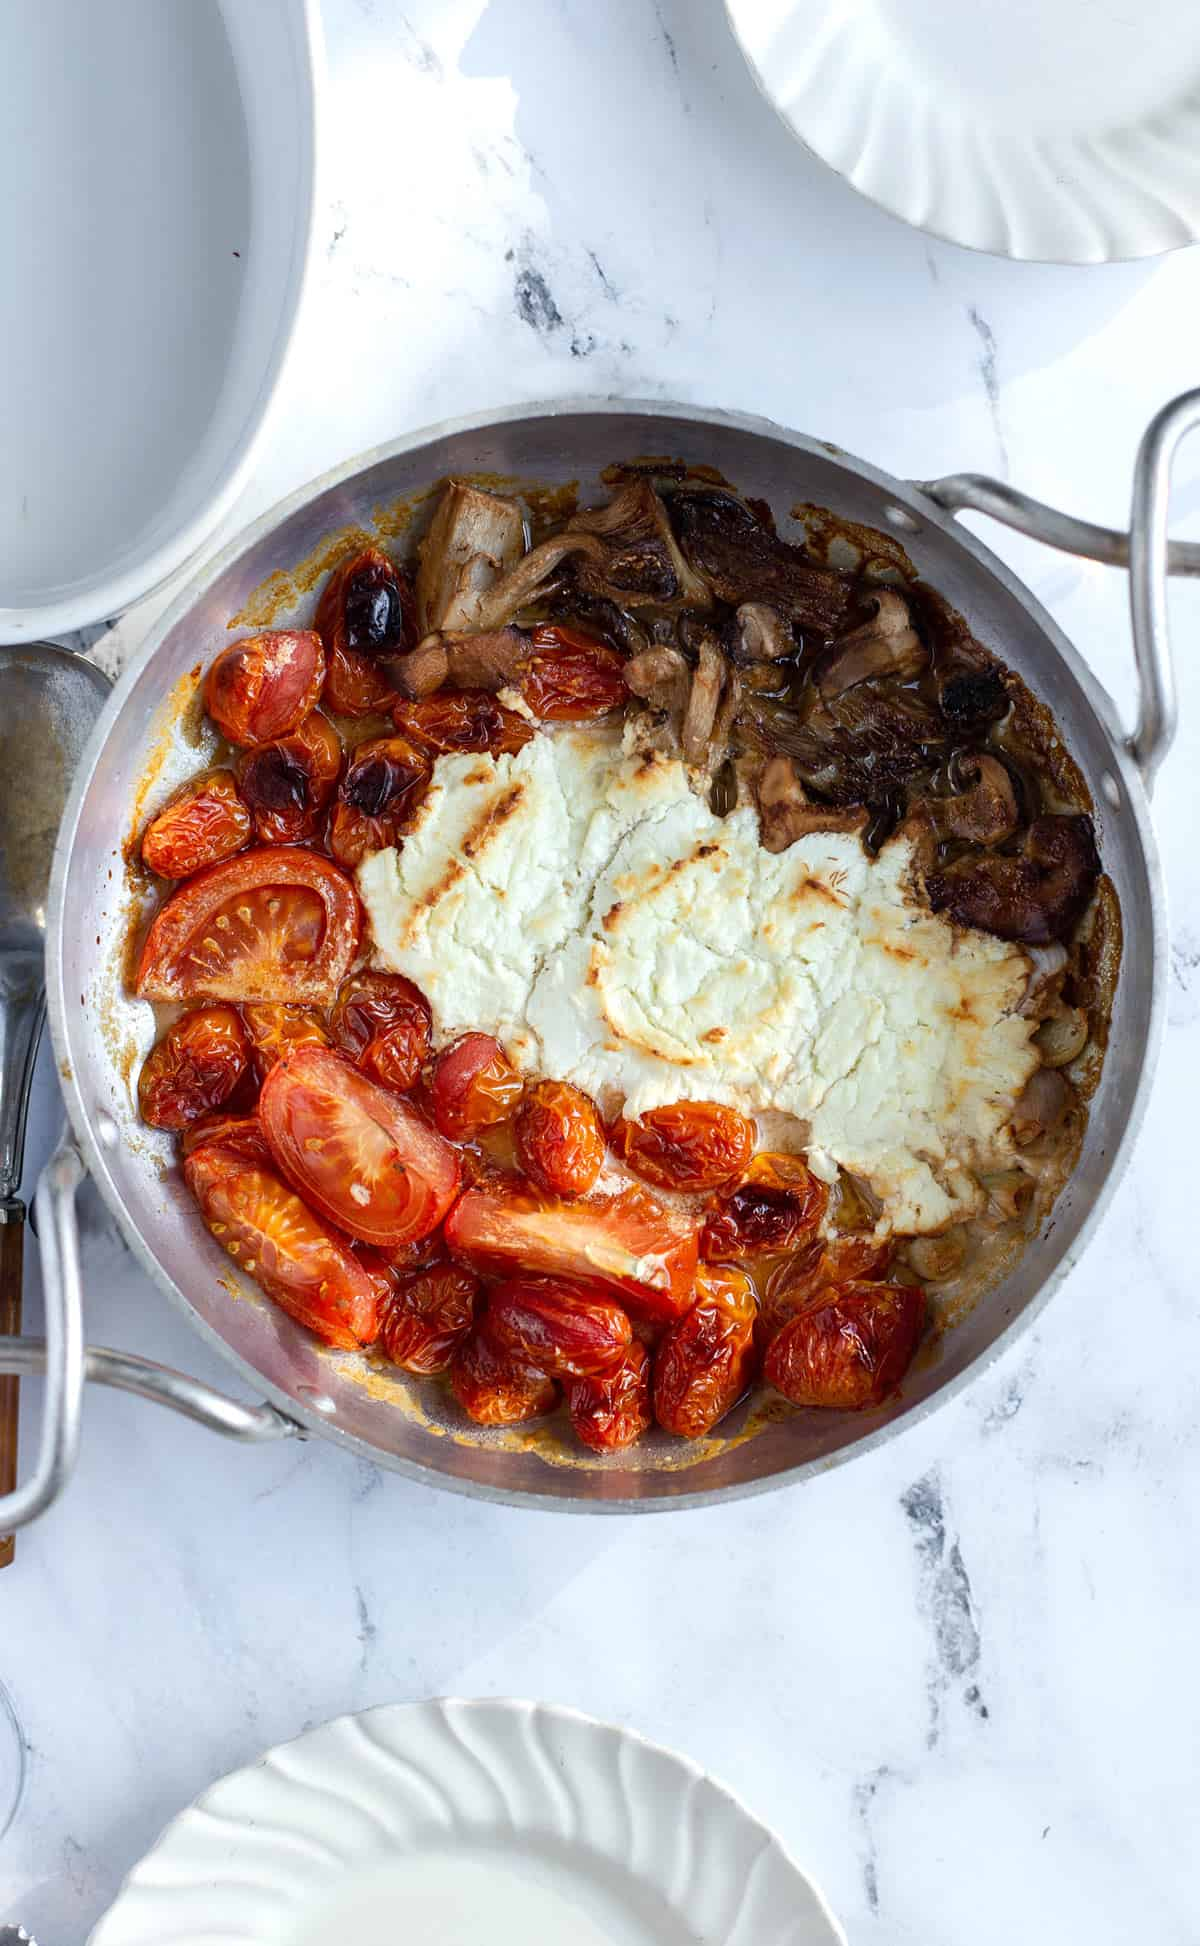 Roasted Tomato Goat Cheese Wild Mushroom Toasts are a simple and easy appetizer with bubbly baked cheese, bursting cherry tomatoes and perfectly roasted mushrooms served in a skillet with garlic toast. bruschetta recipe | skillet dip | goat cheese mushroom toasts | baked cheese recipe